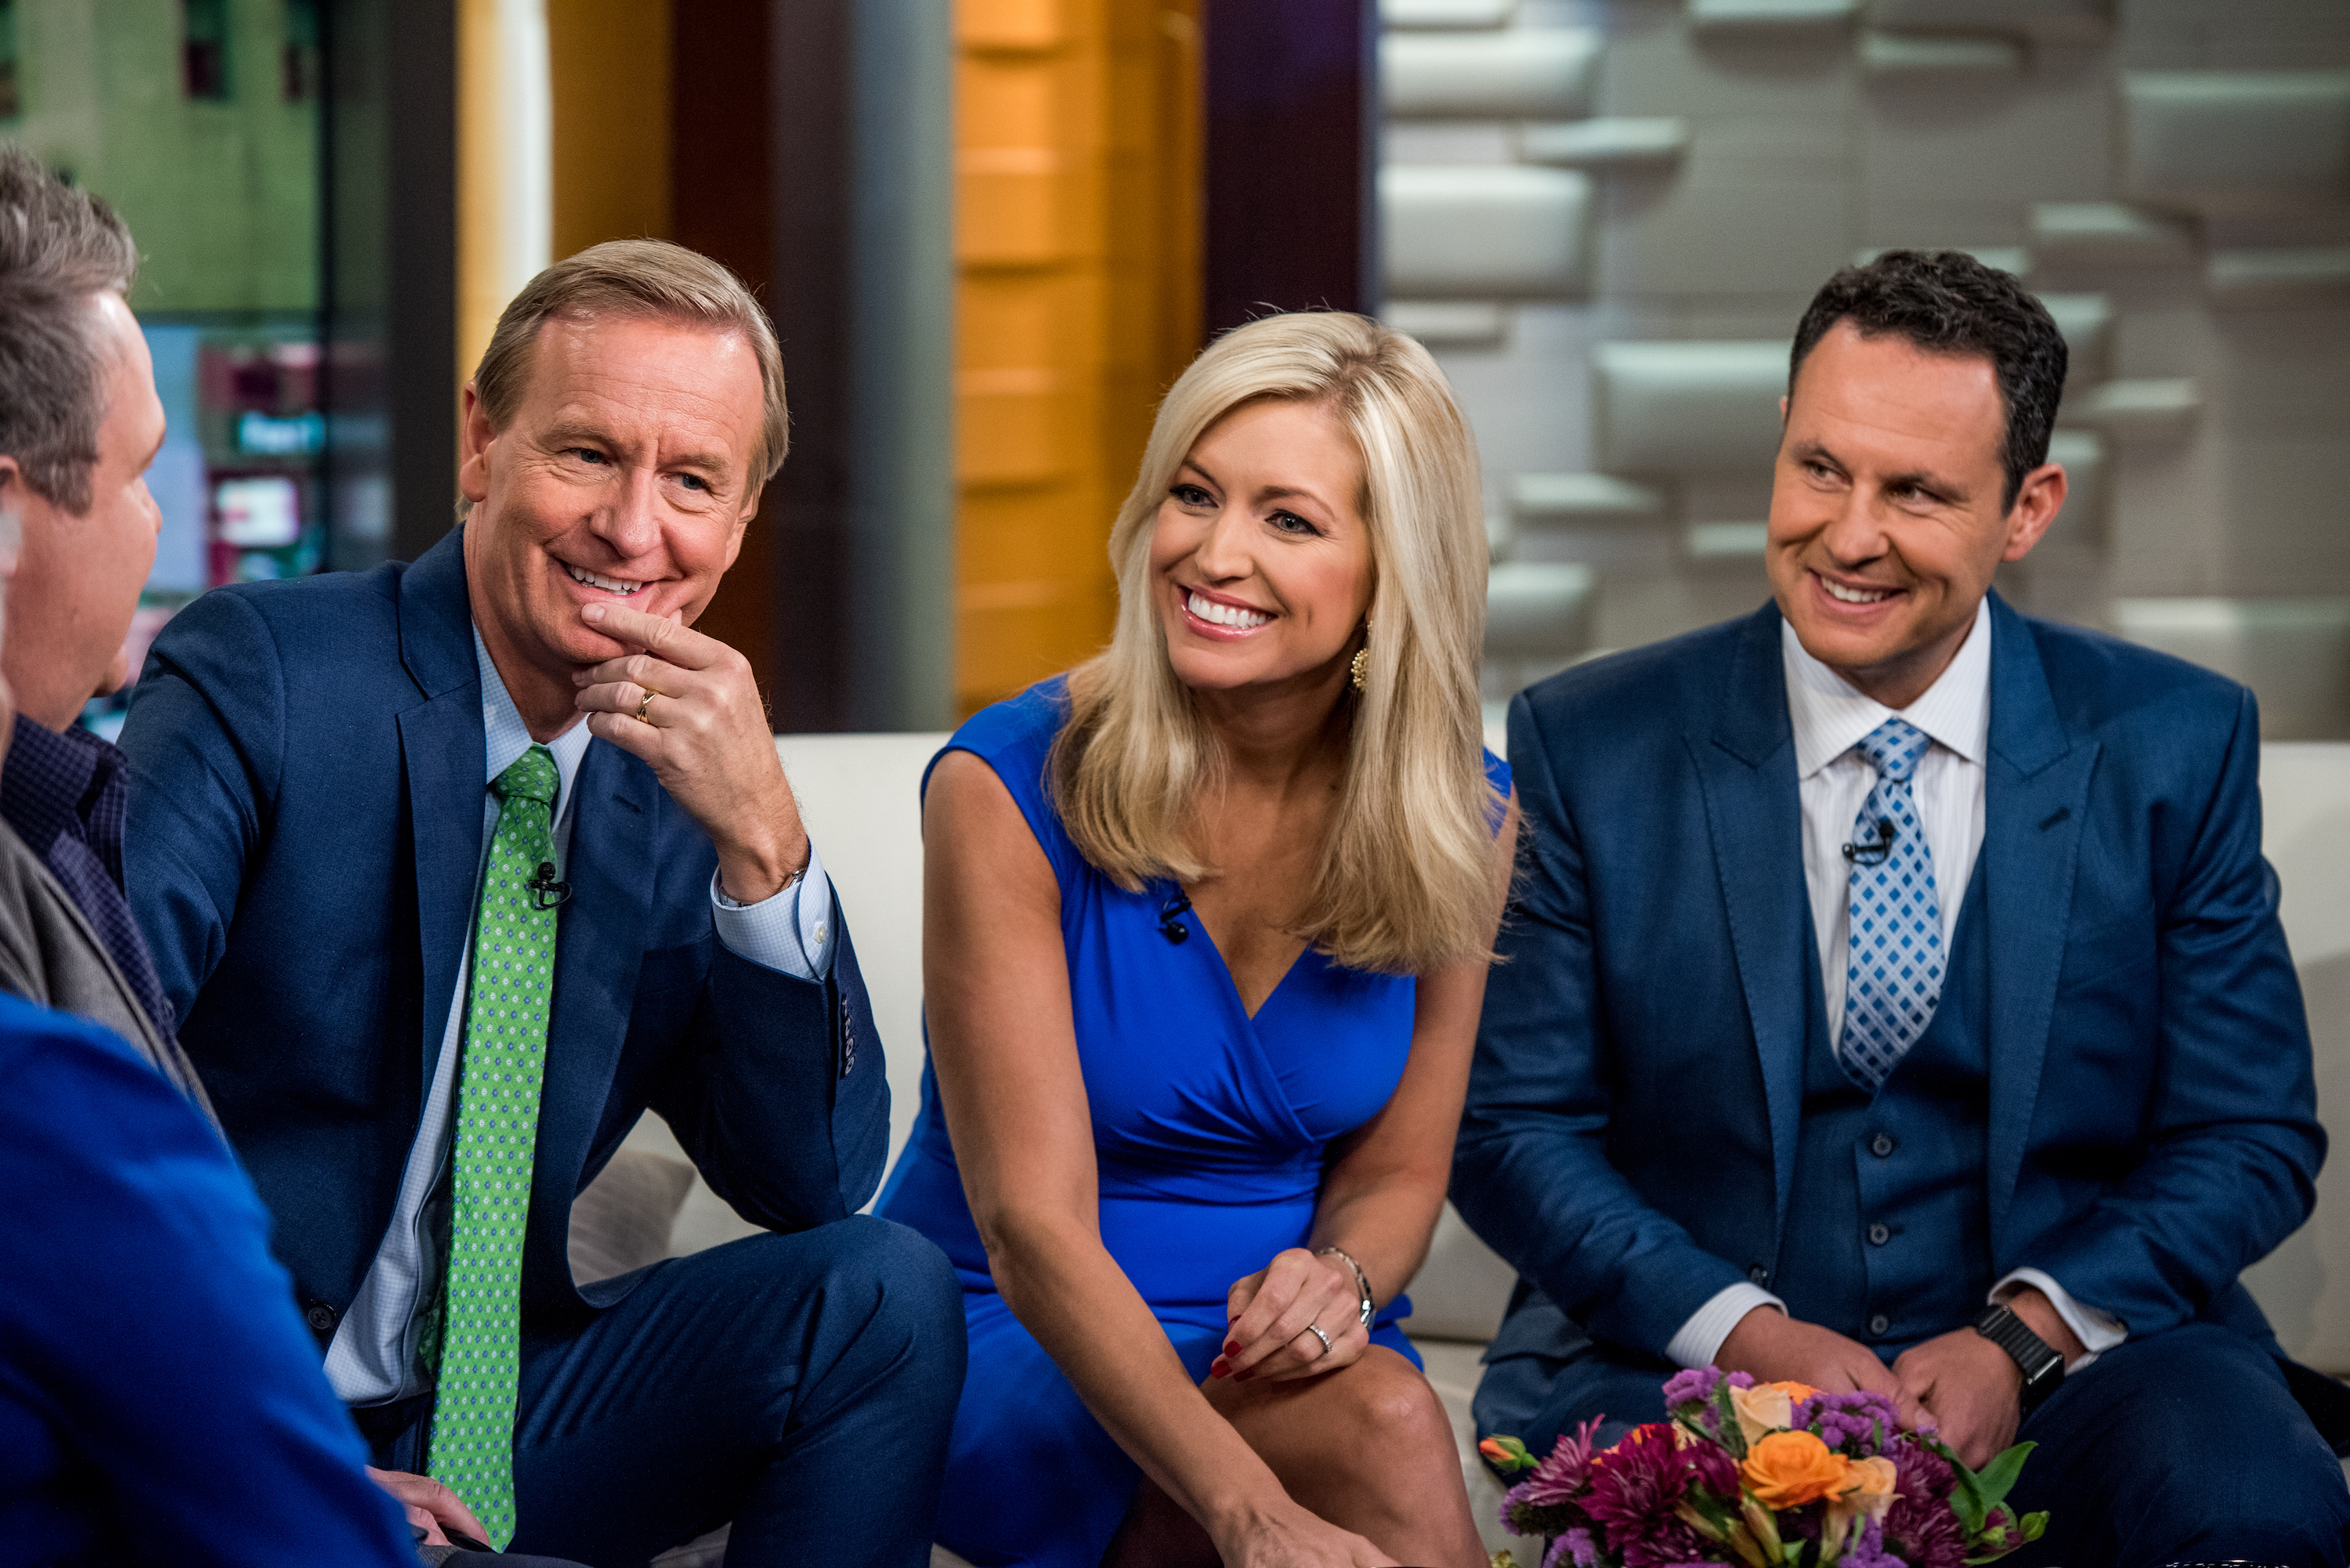 'Fox & Friends' Hosts Think Minimum Wage Fast Food Workers Should Stop Complaining - VICE